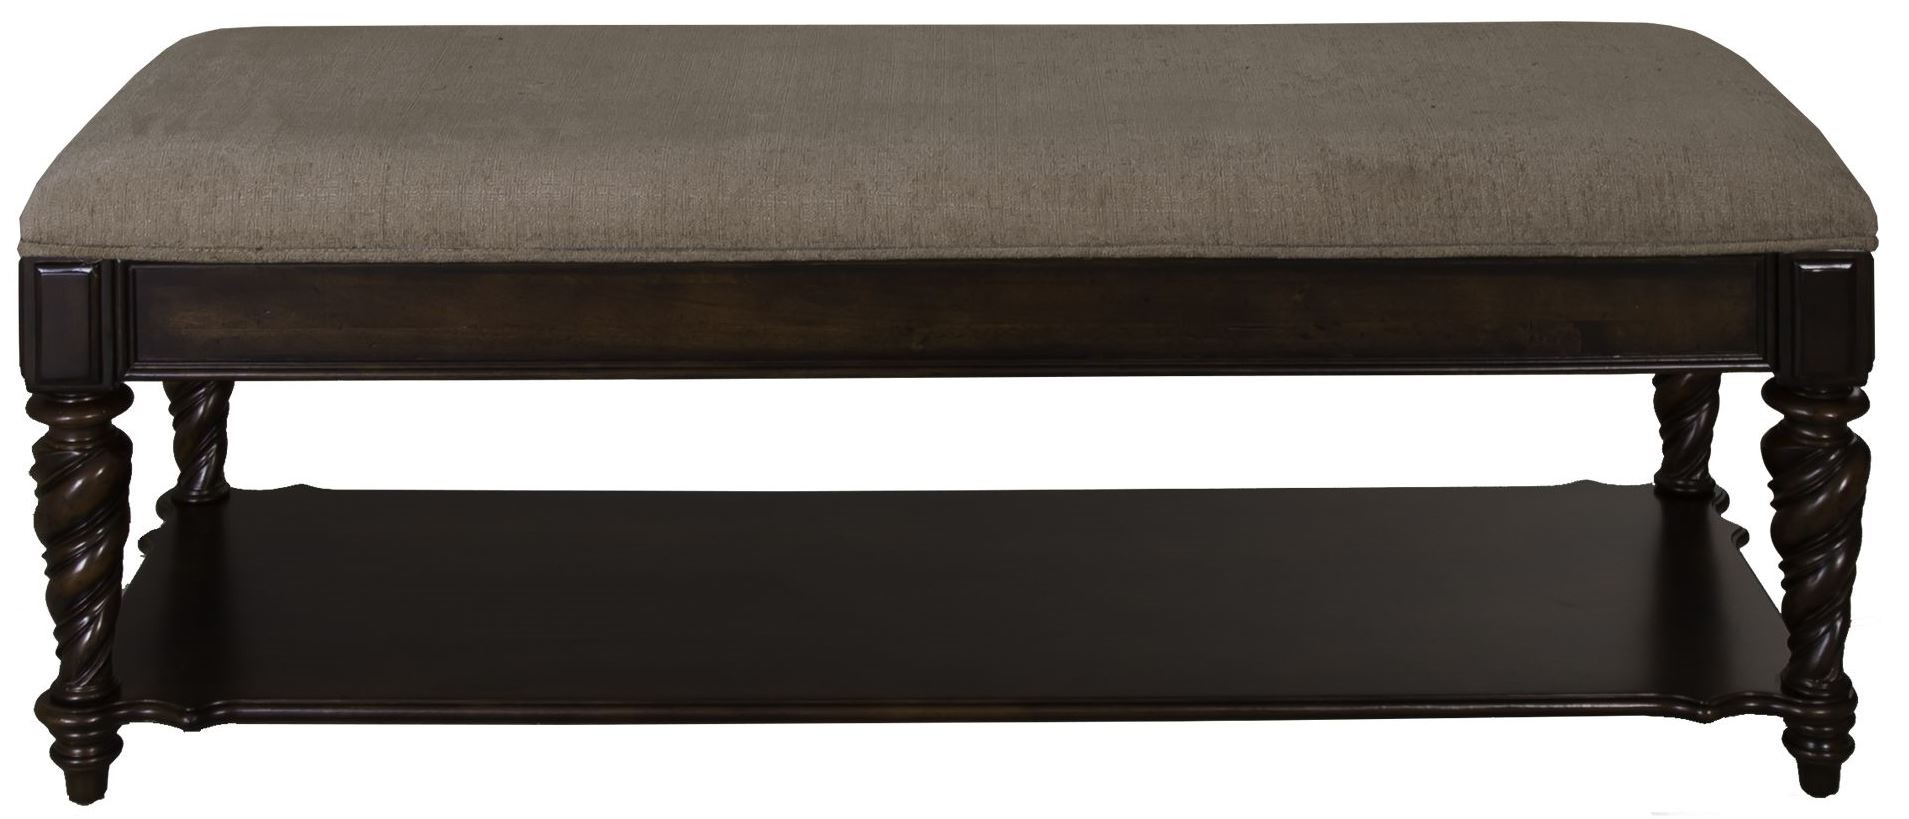 Arbor Place Brownstone Bed Bench 575 Br47 Liberty